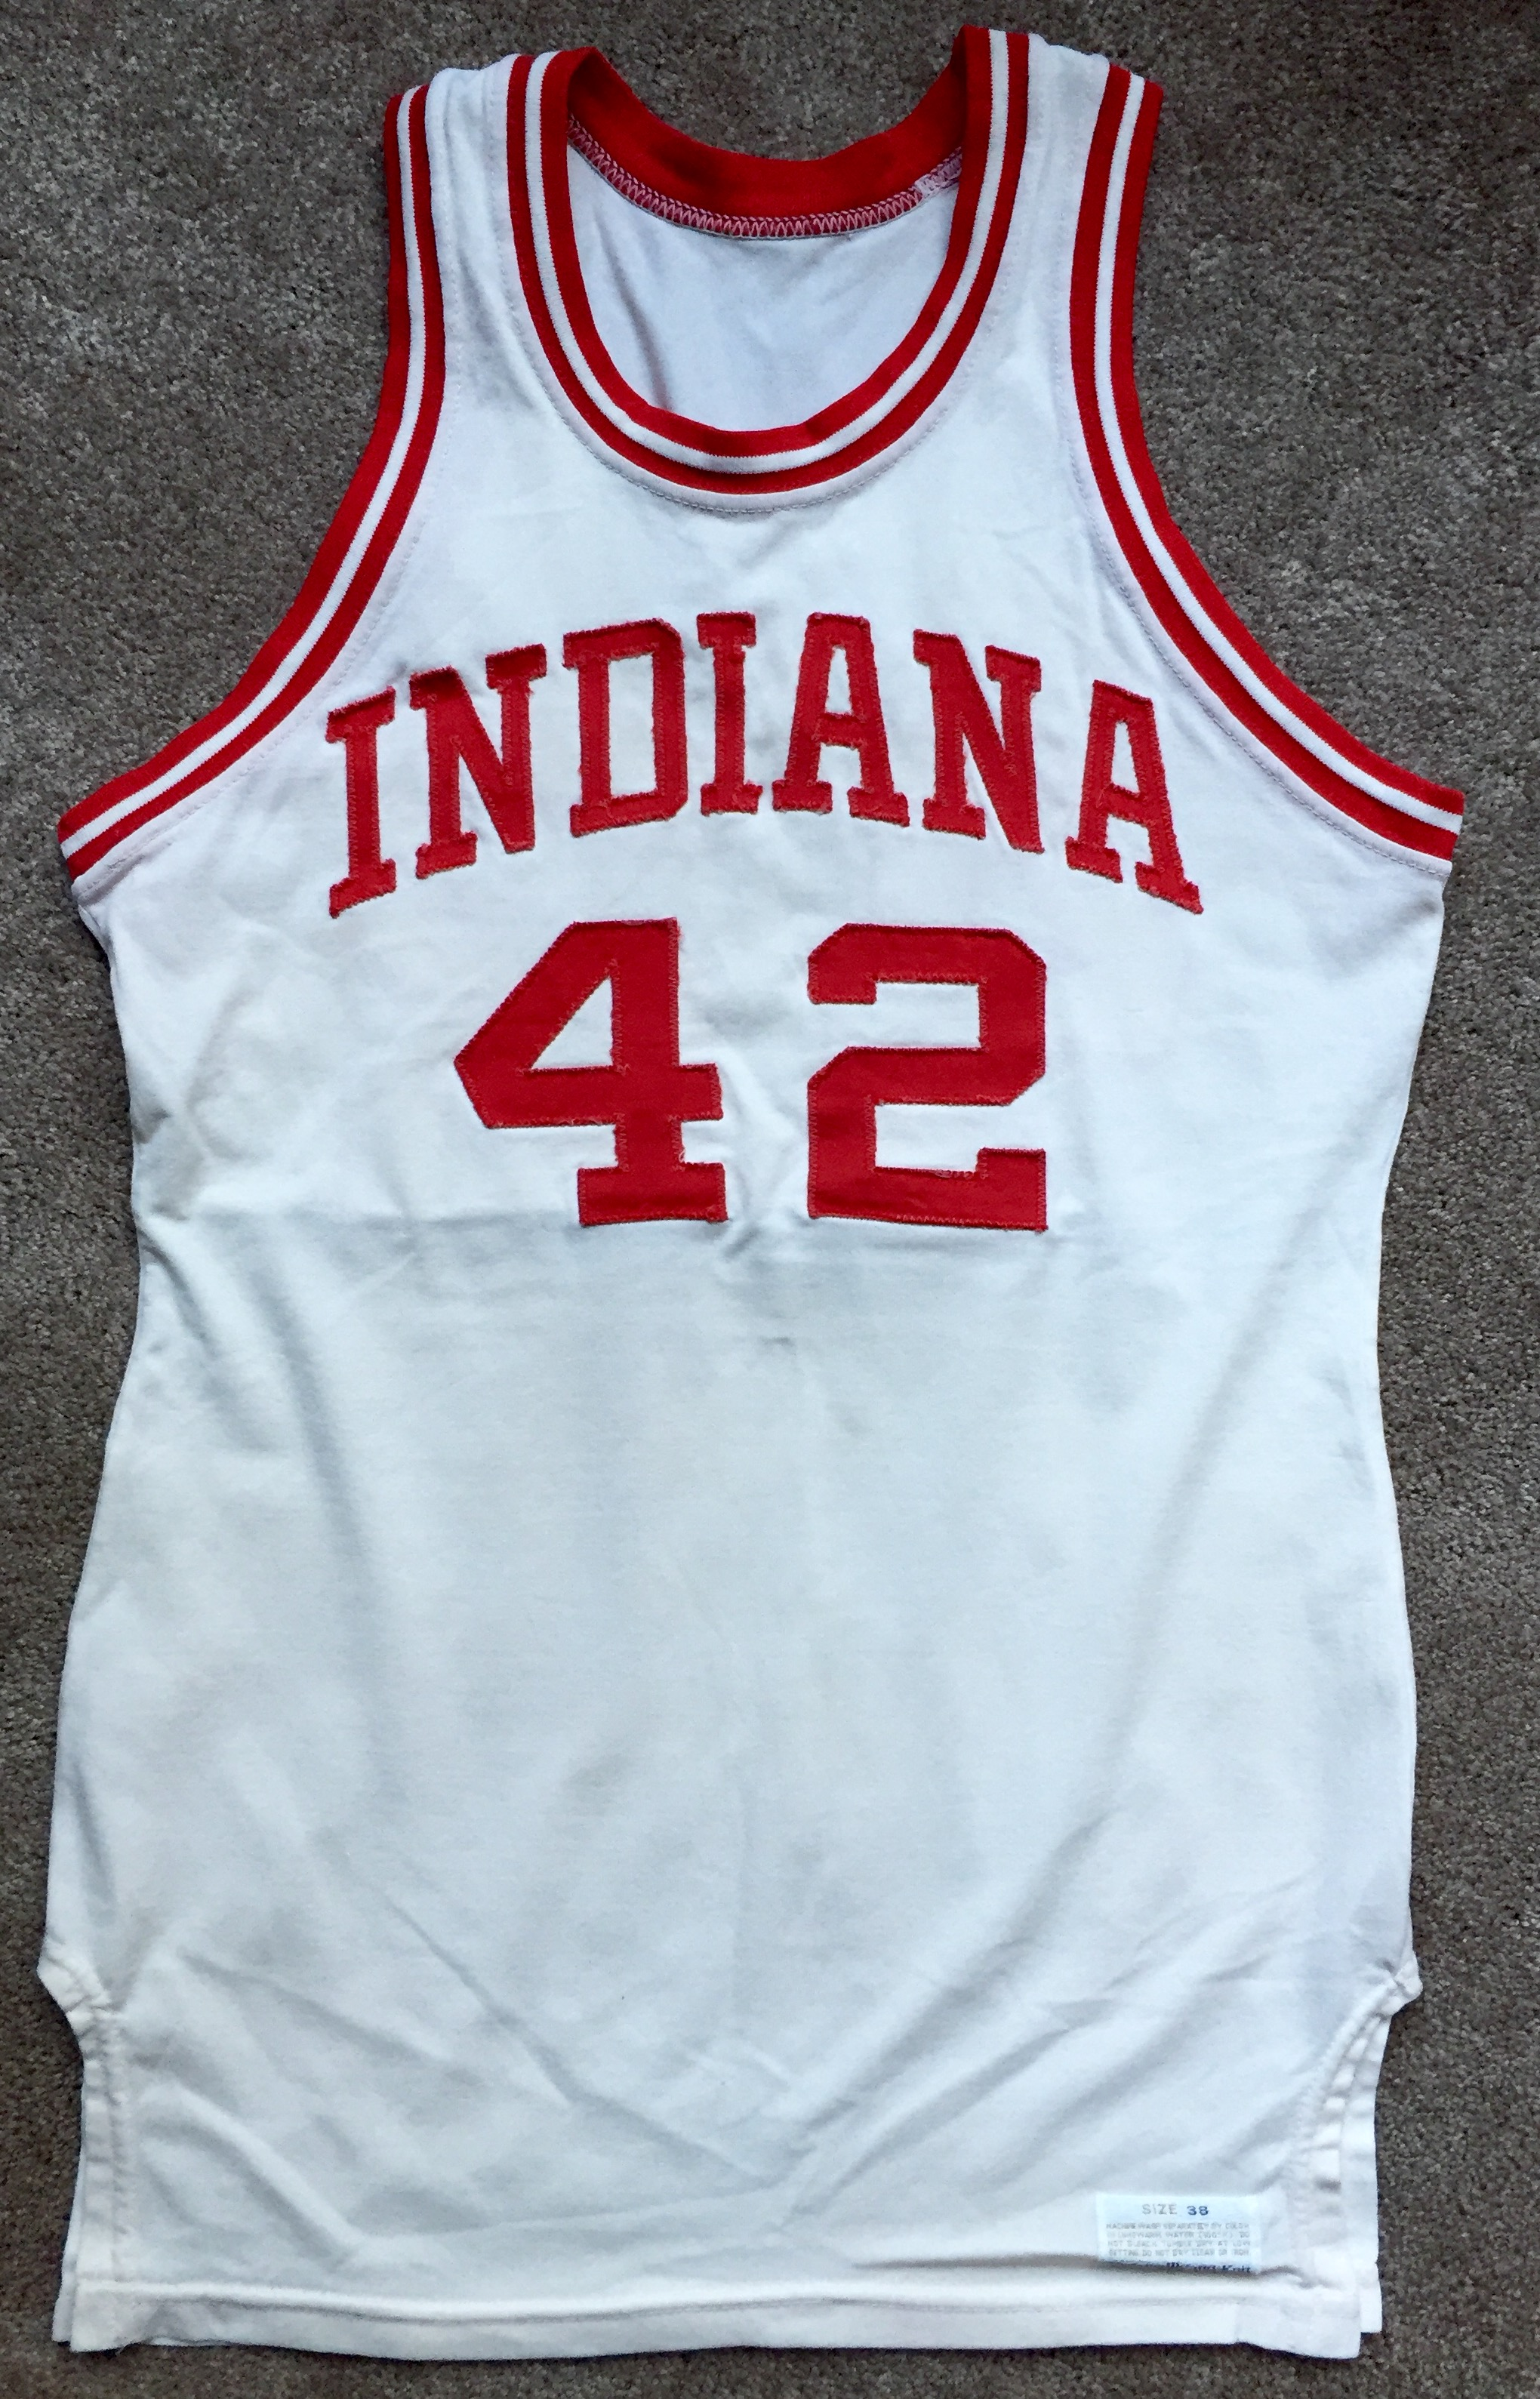 55952d5905a A 1976-77 Mike Woodson IU home jersey manufactured by Medalist Sand-Knit.